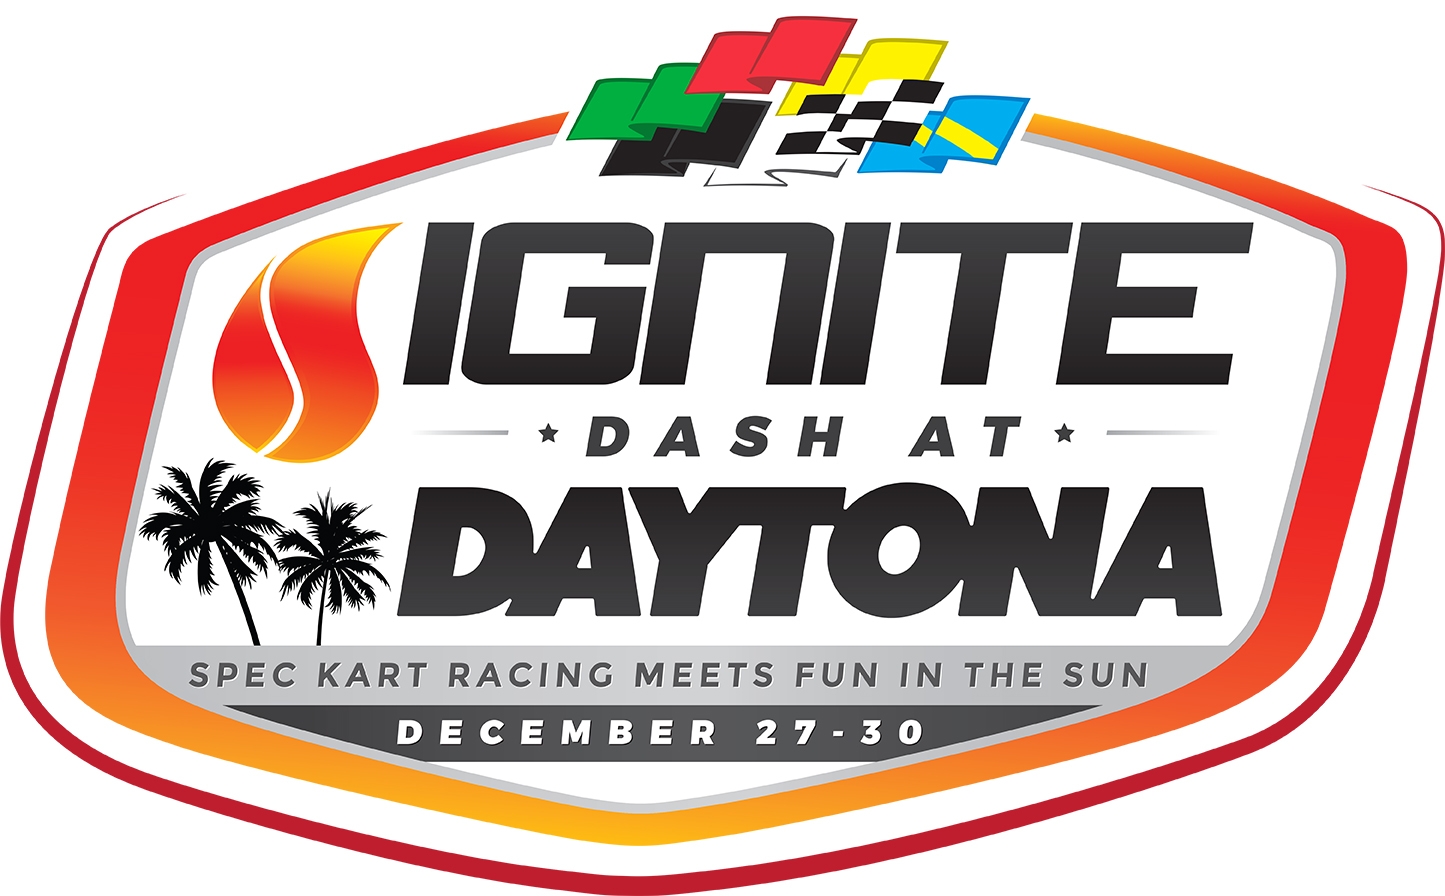 Ignite Dash at Daytona (December 27-30)